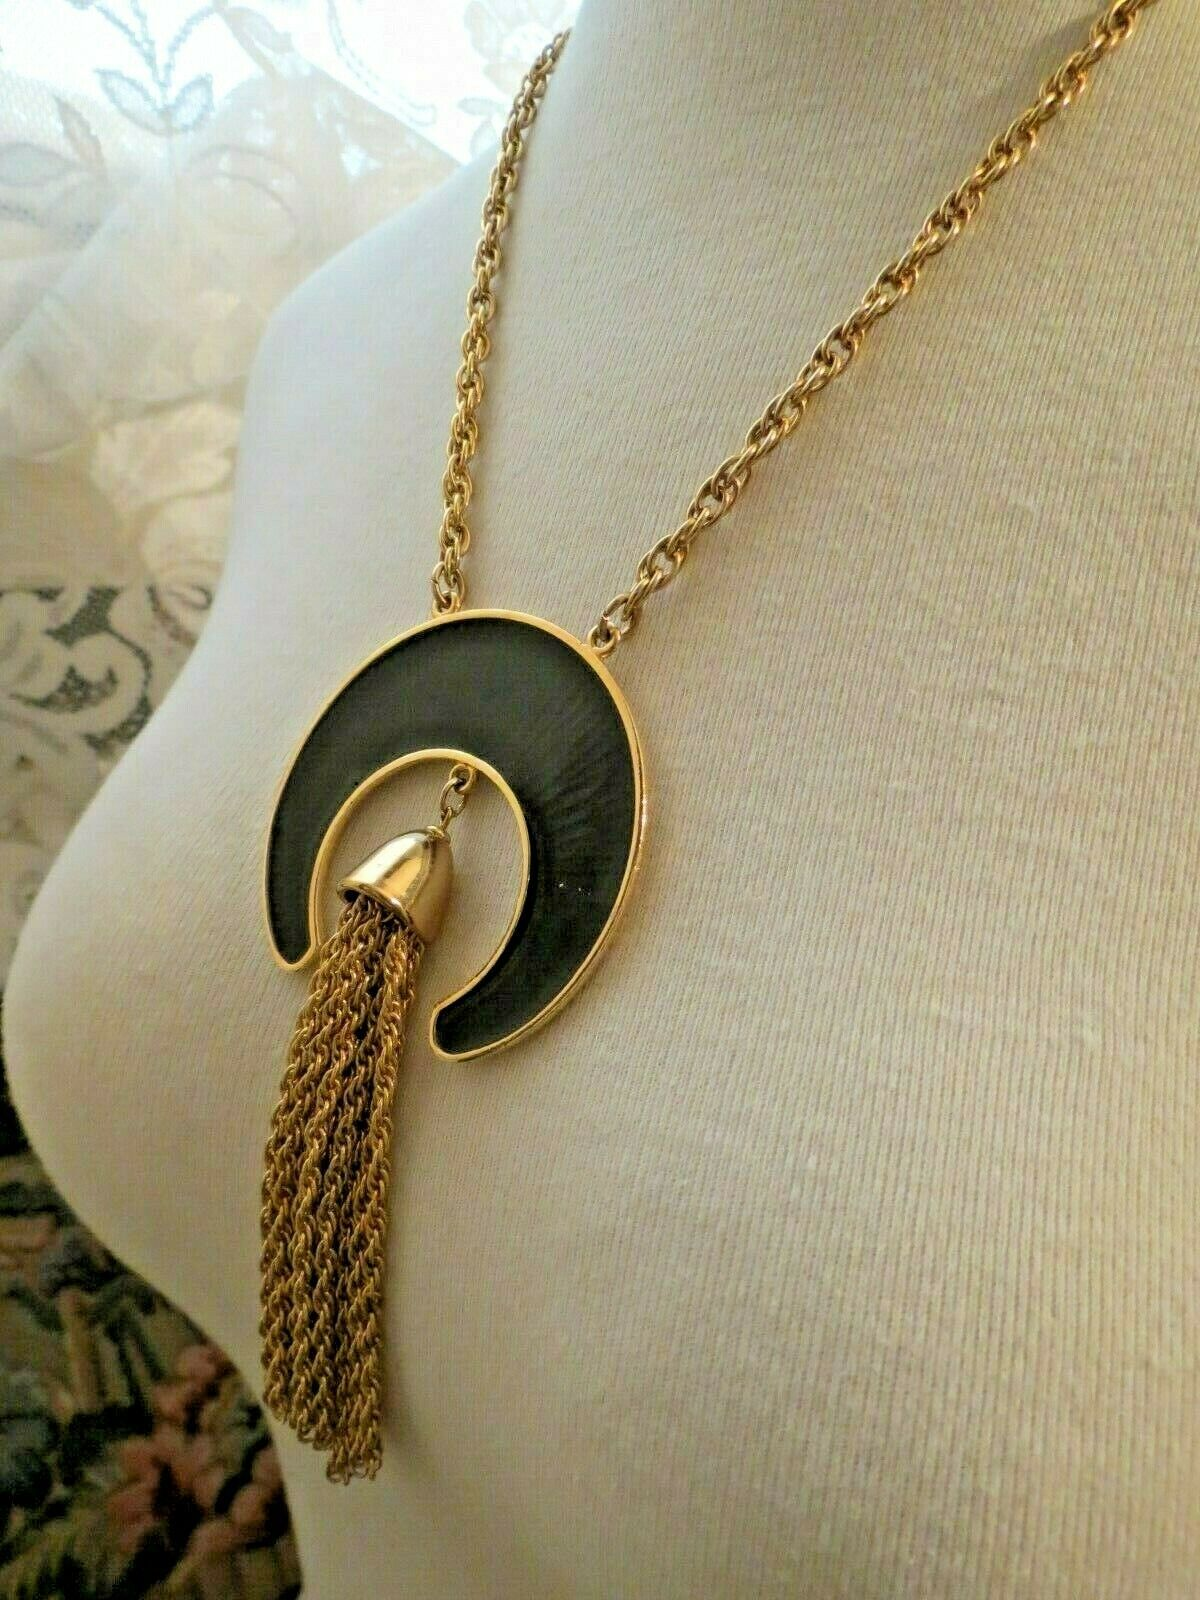 Couture Napier Enamel Pendant Necklace Chain Fringe Dangle Gold Plated Designer